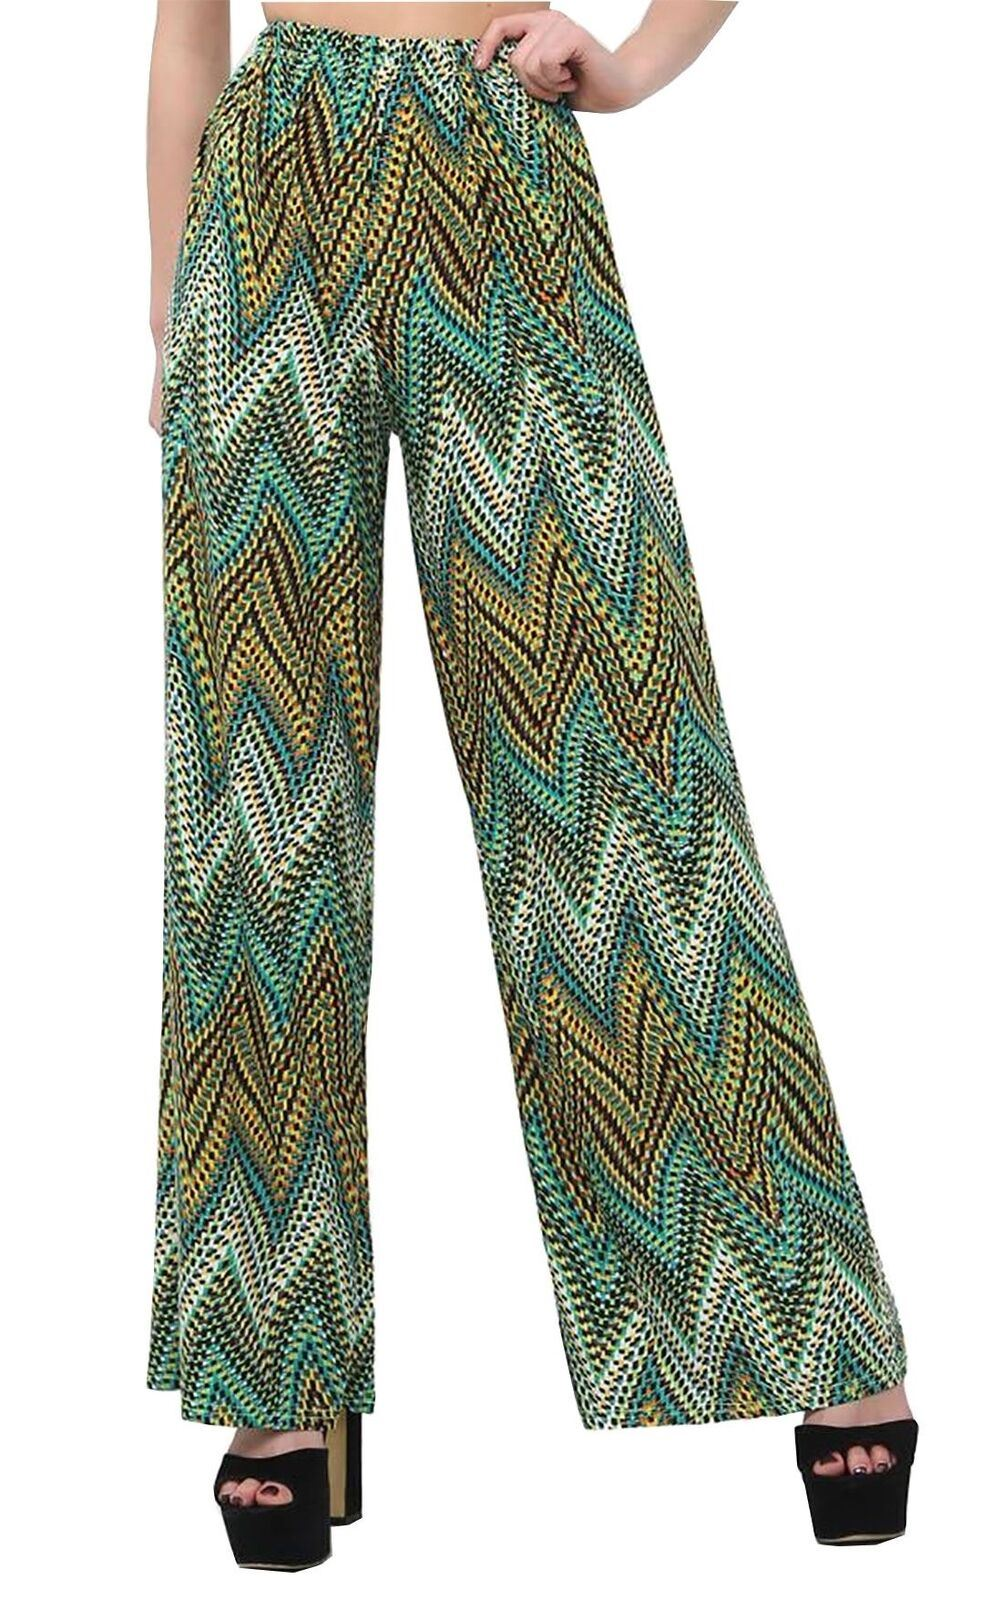 New-Ladies-Floral-Printed-Wide-Leg-Flared-Parallel-Baggy-Trousers-Pants-Palazzo thumbnail 12